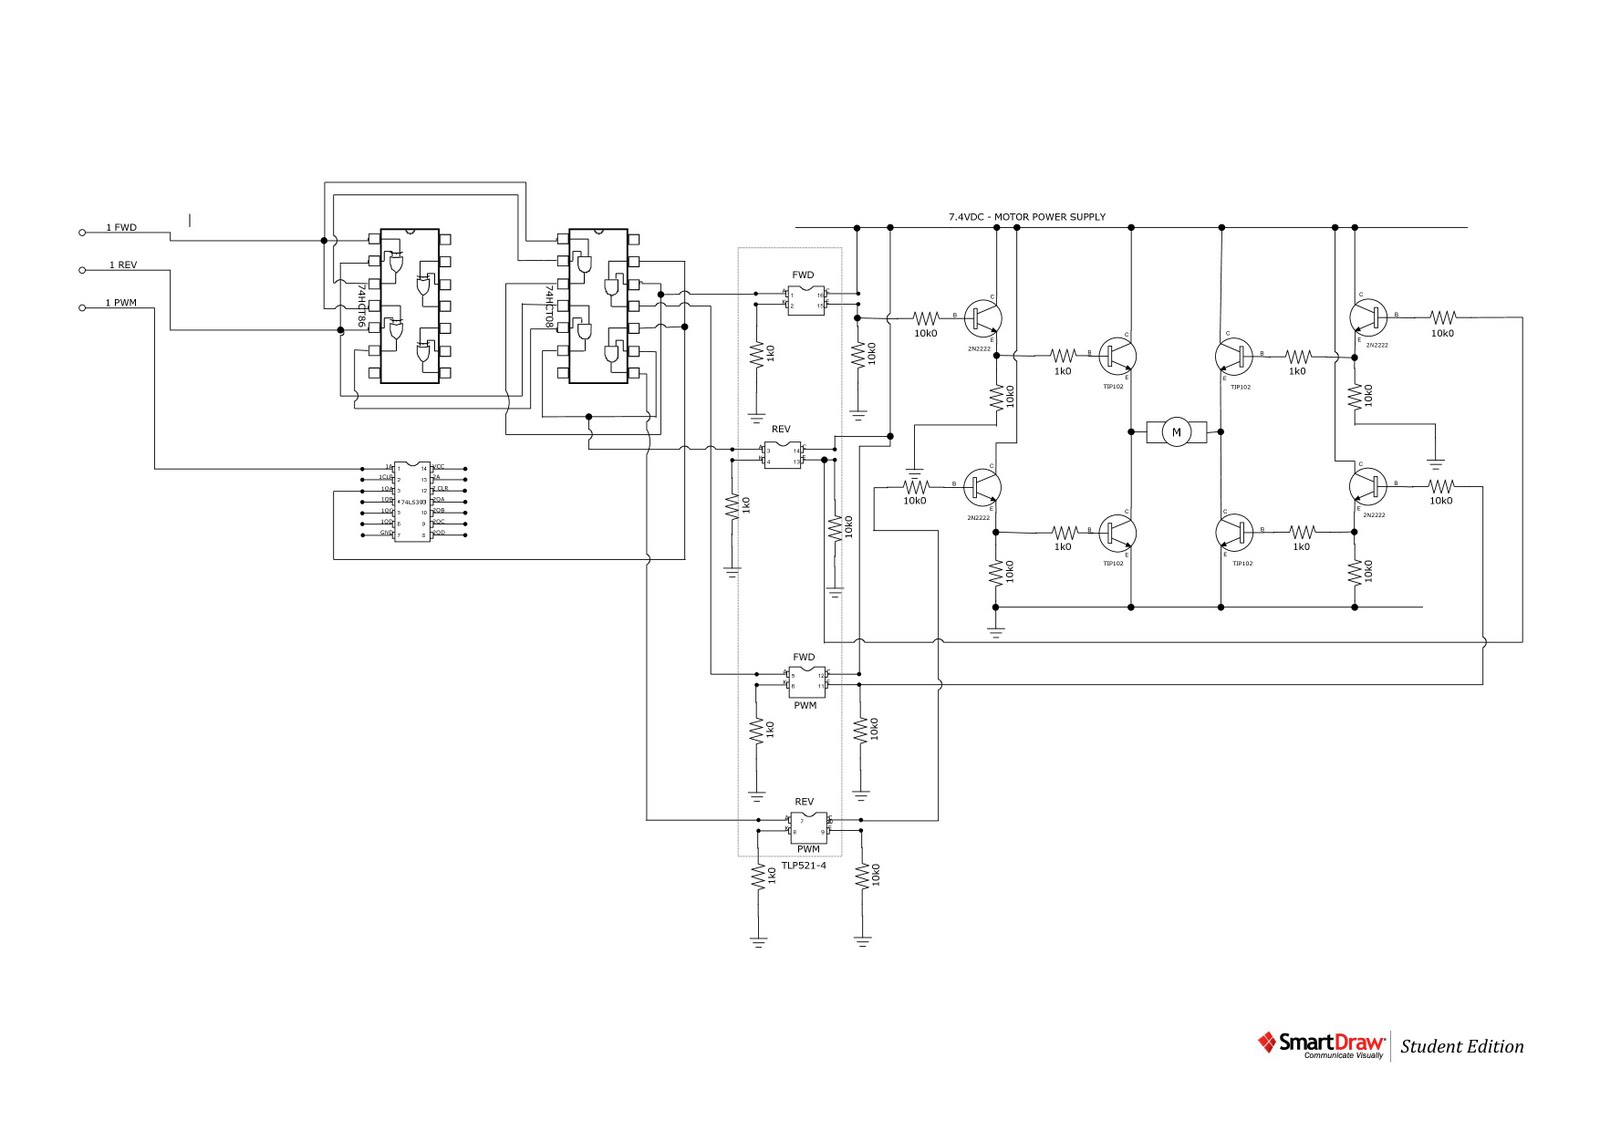 latching relay wiring group picture image by tag keywordpictures HVAC Wiring Schematics